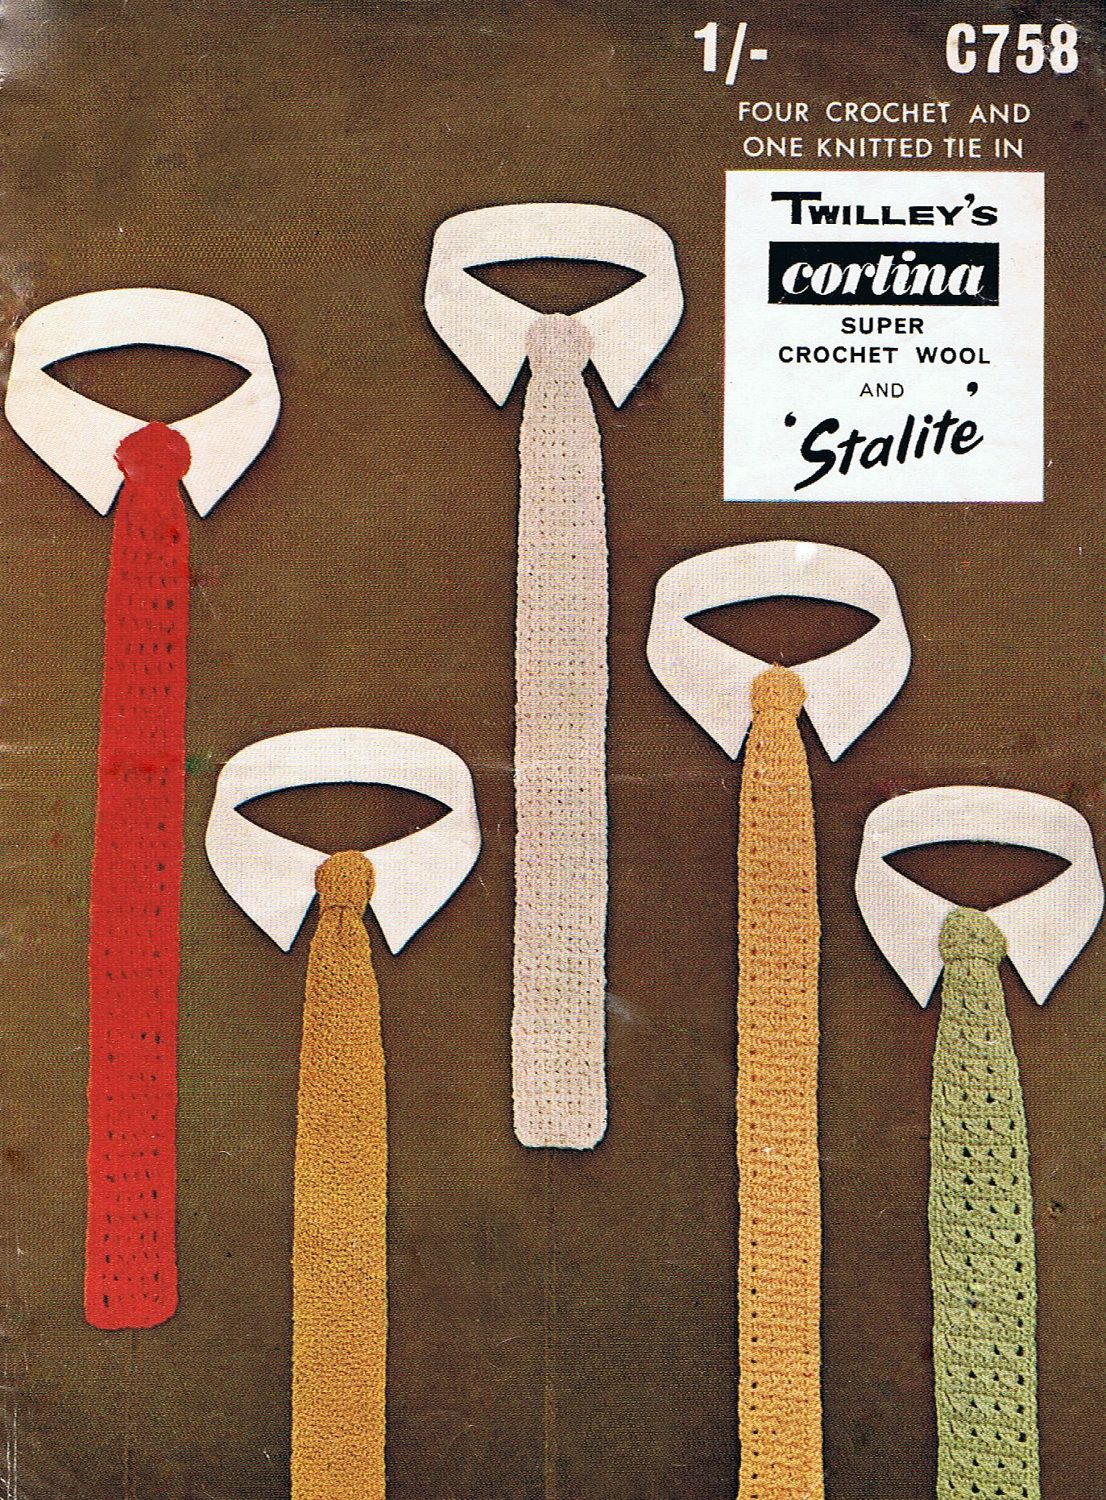 5 Skinny Ties - Knitting and Crochet Pattern Mens Tie PDF Vintage ...